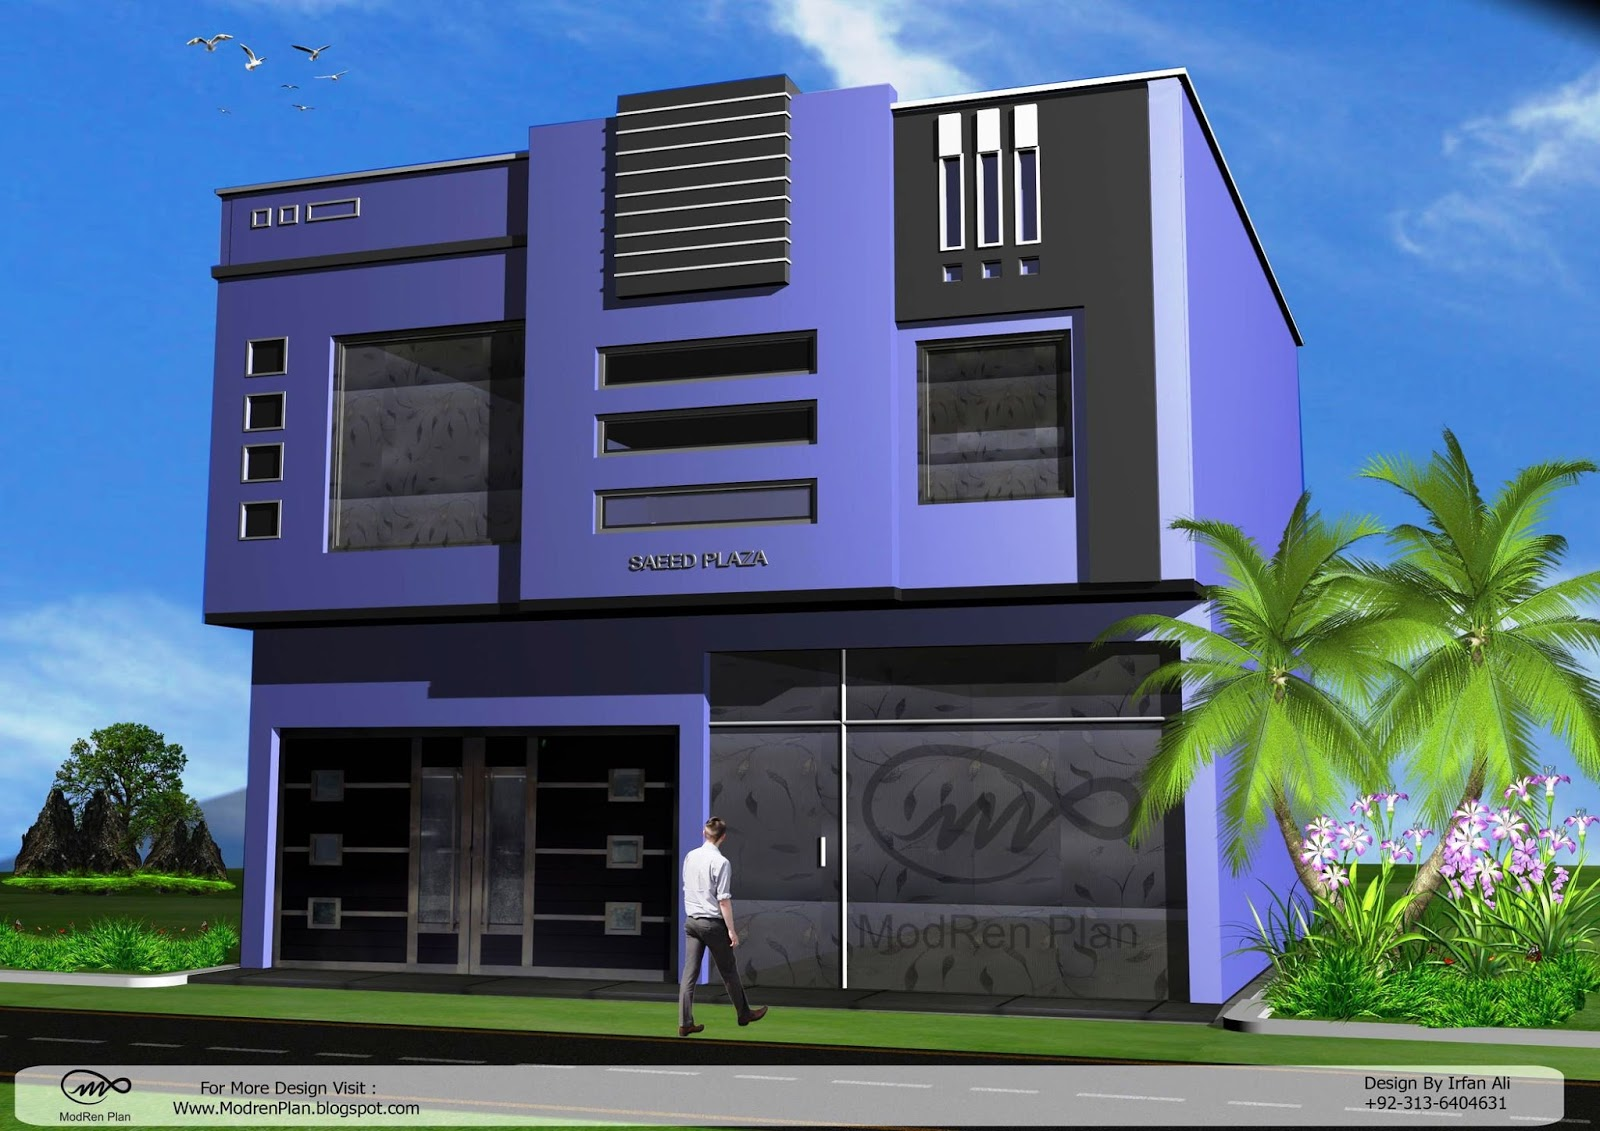 Front Elevation Of Office Building : Modern commercial building designs and plaza front elevation